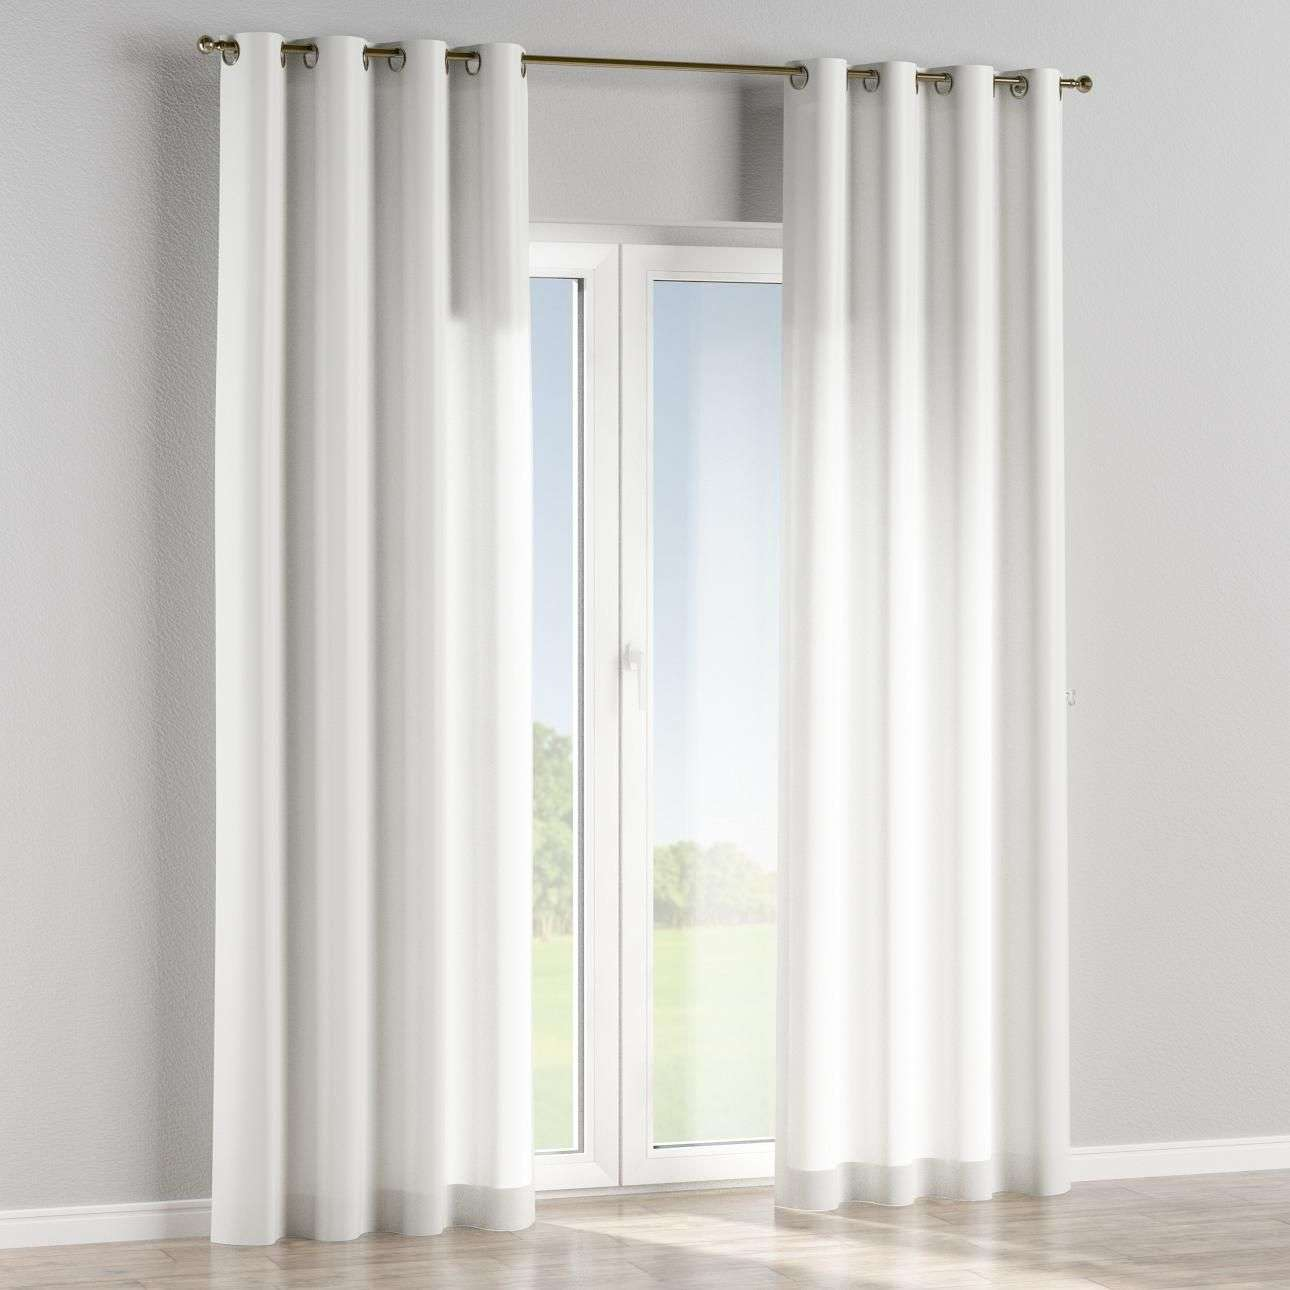 Eyelet lined curtains in collection Cardiff, fabric: 136-28